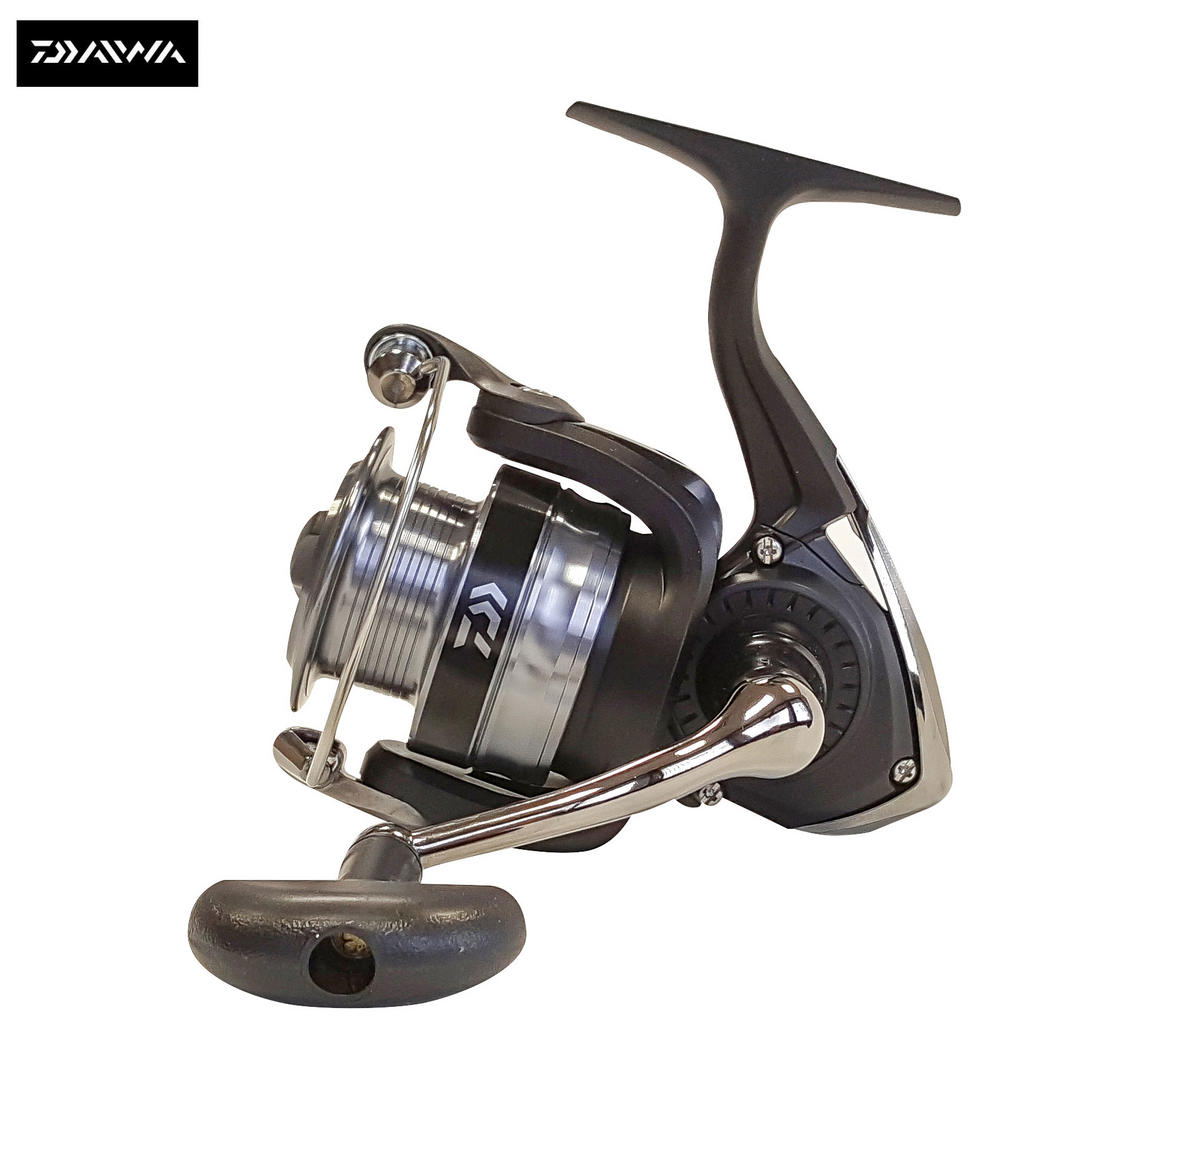 EX DISPLAY  Daiwa RX Spinning Reel 3000 BI Model No. RX3000 BI WITH LINE